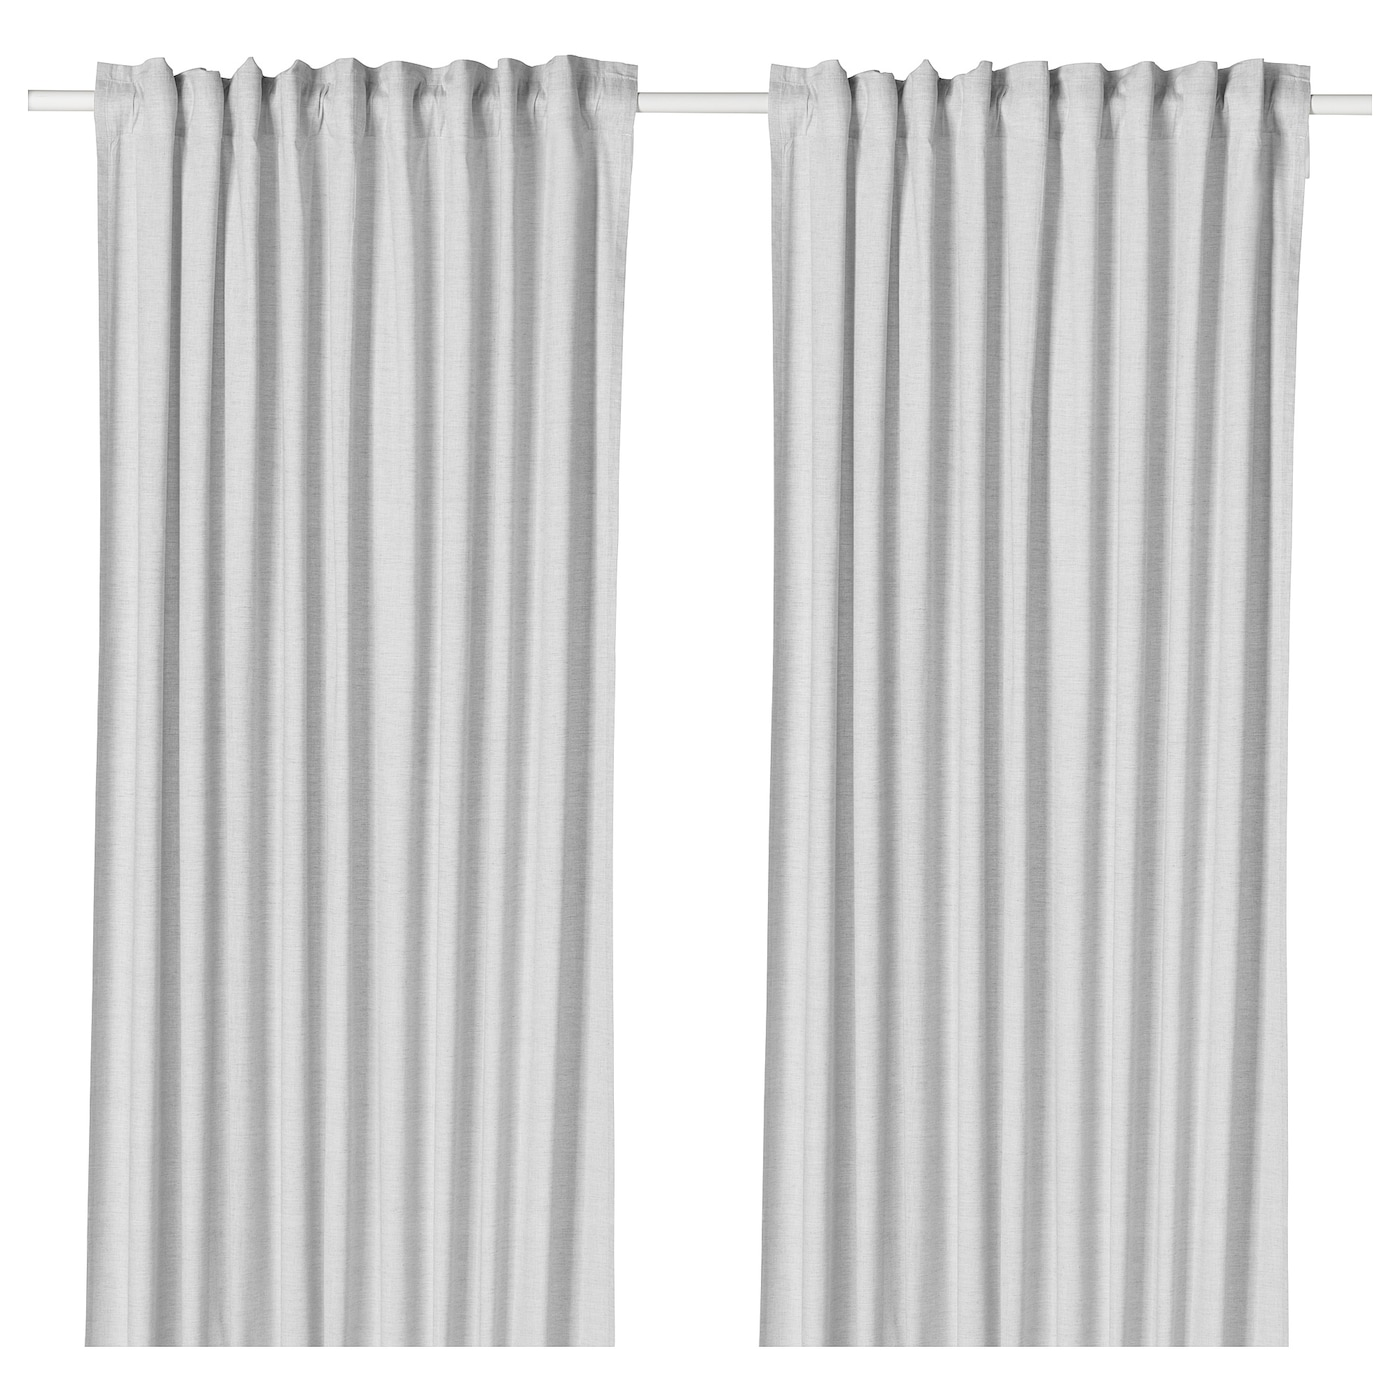 IKEA HANNALILL curtains, 1 pair The curtains can be used on a curtain rod or a curtain track.